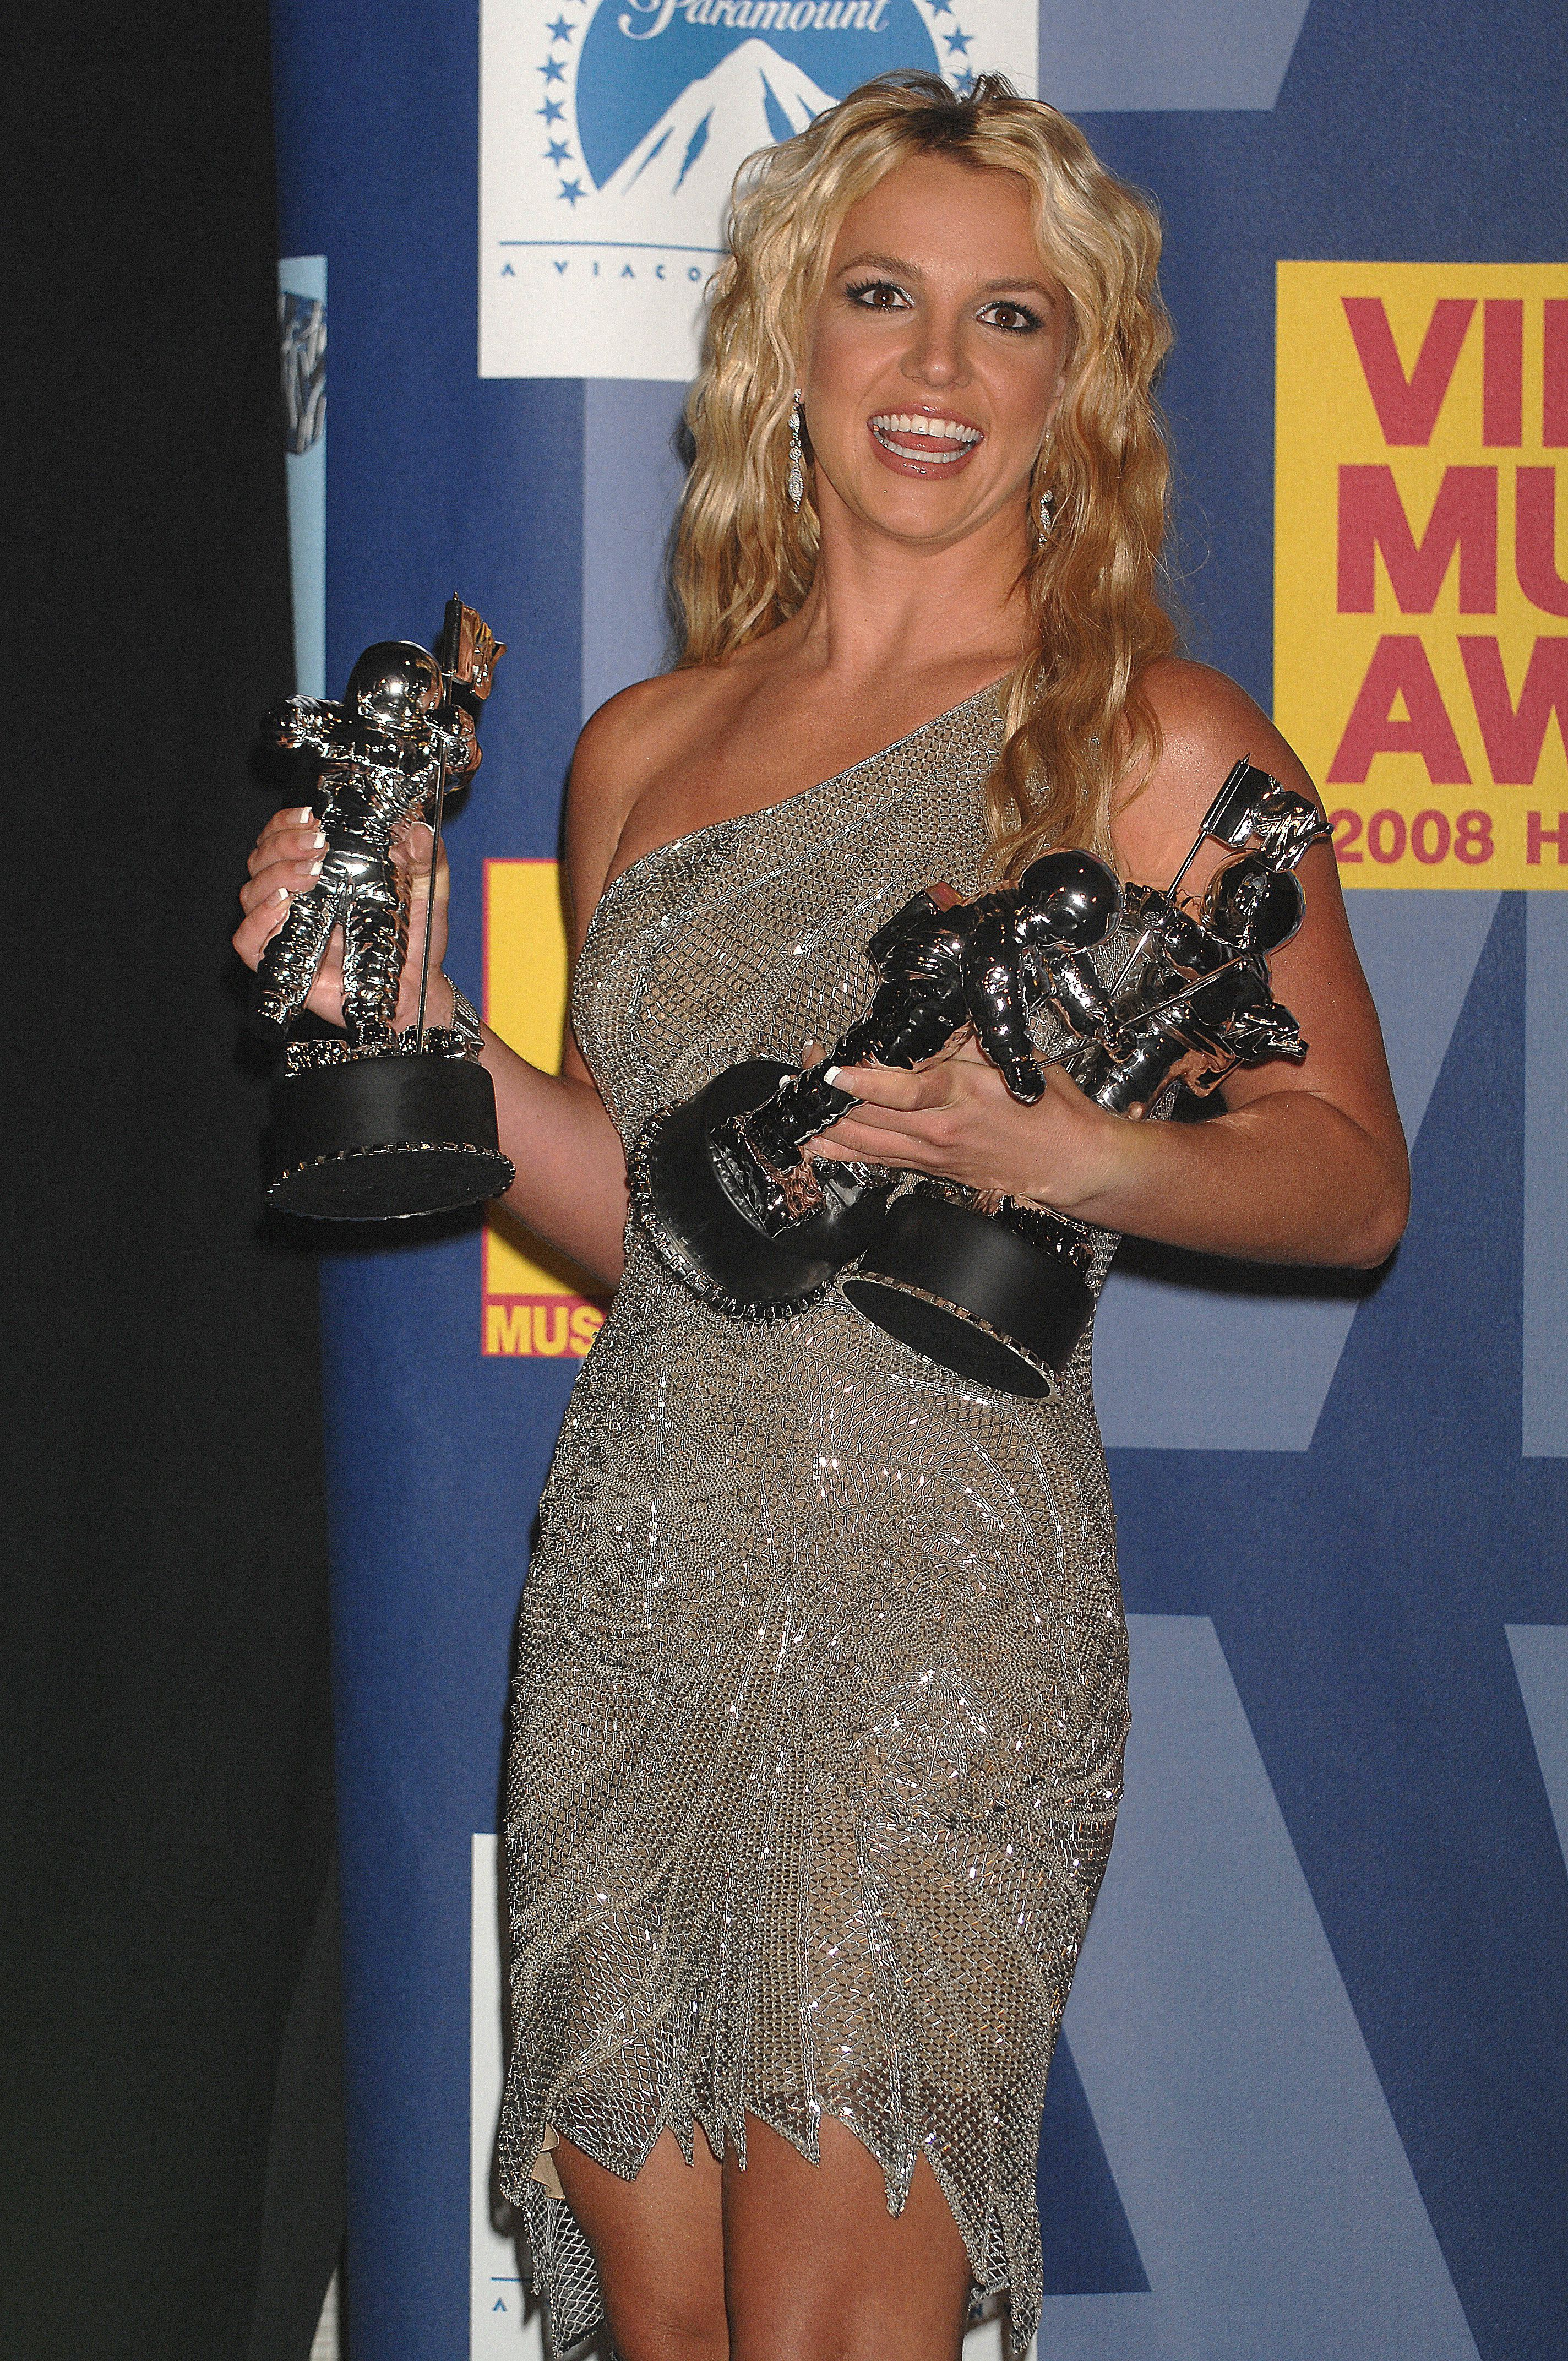 Singer Britney Spears poses with her Moonman trophies for Video of the Year, Best Female Video and Best Pop Video, at the 2008 MTV Video Music Awards held at Paramount Studios in Hollywood. (Photo by Frank Trapper/Corbis via Getty Images)